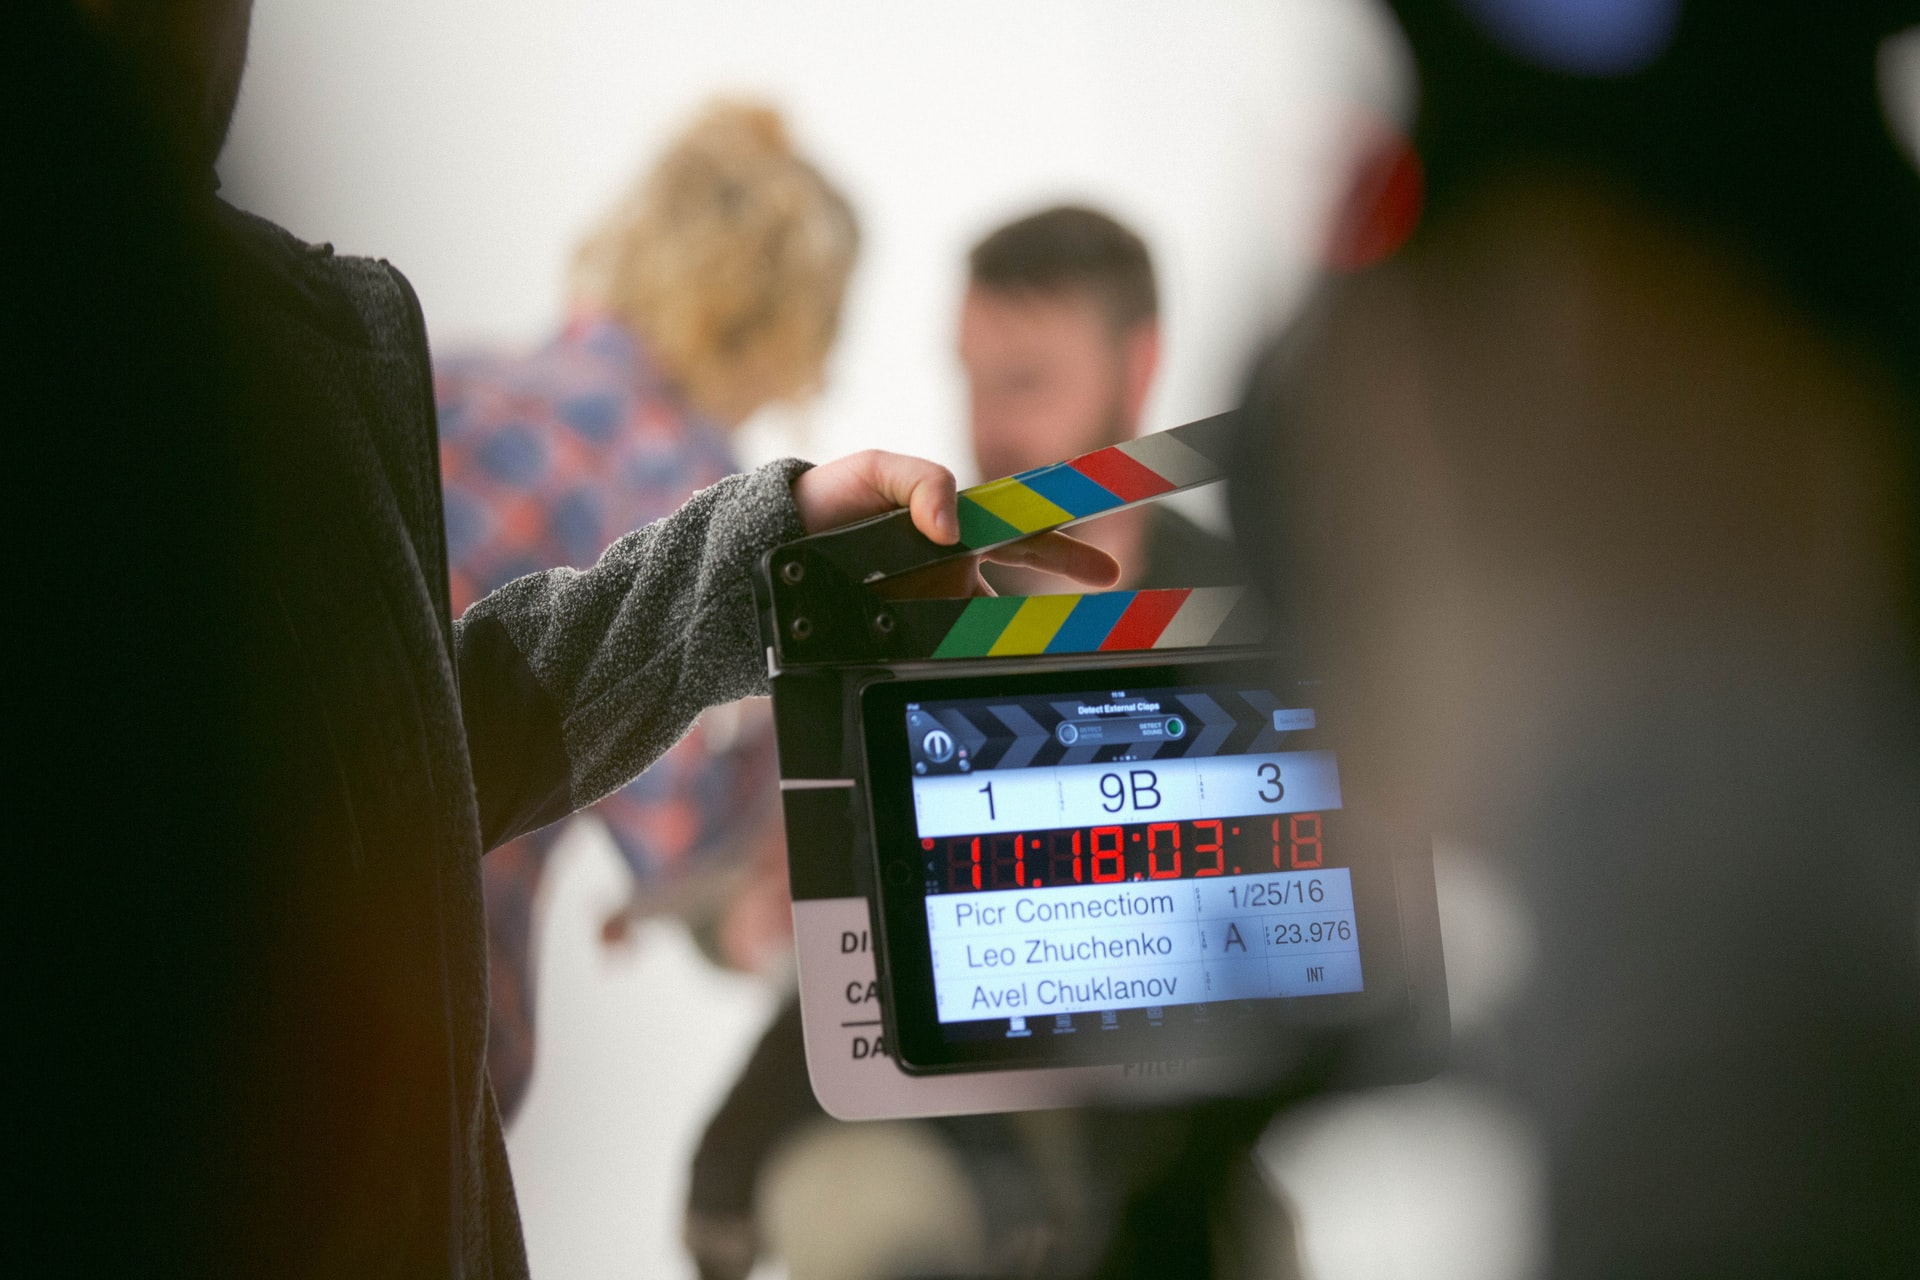 Finding acting film auditions